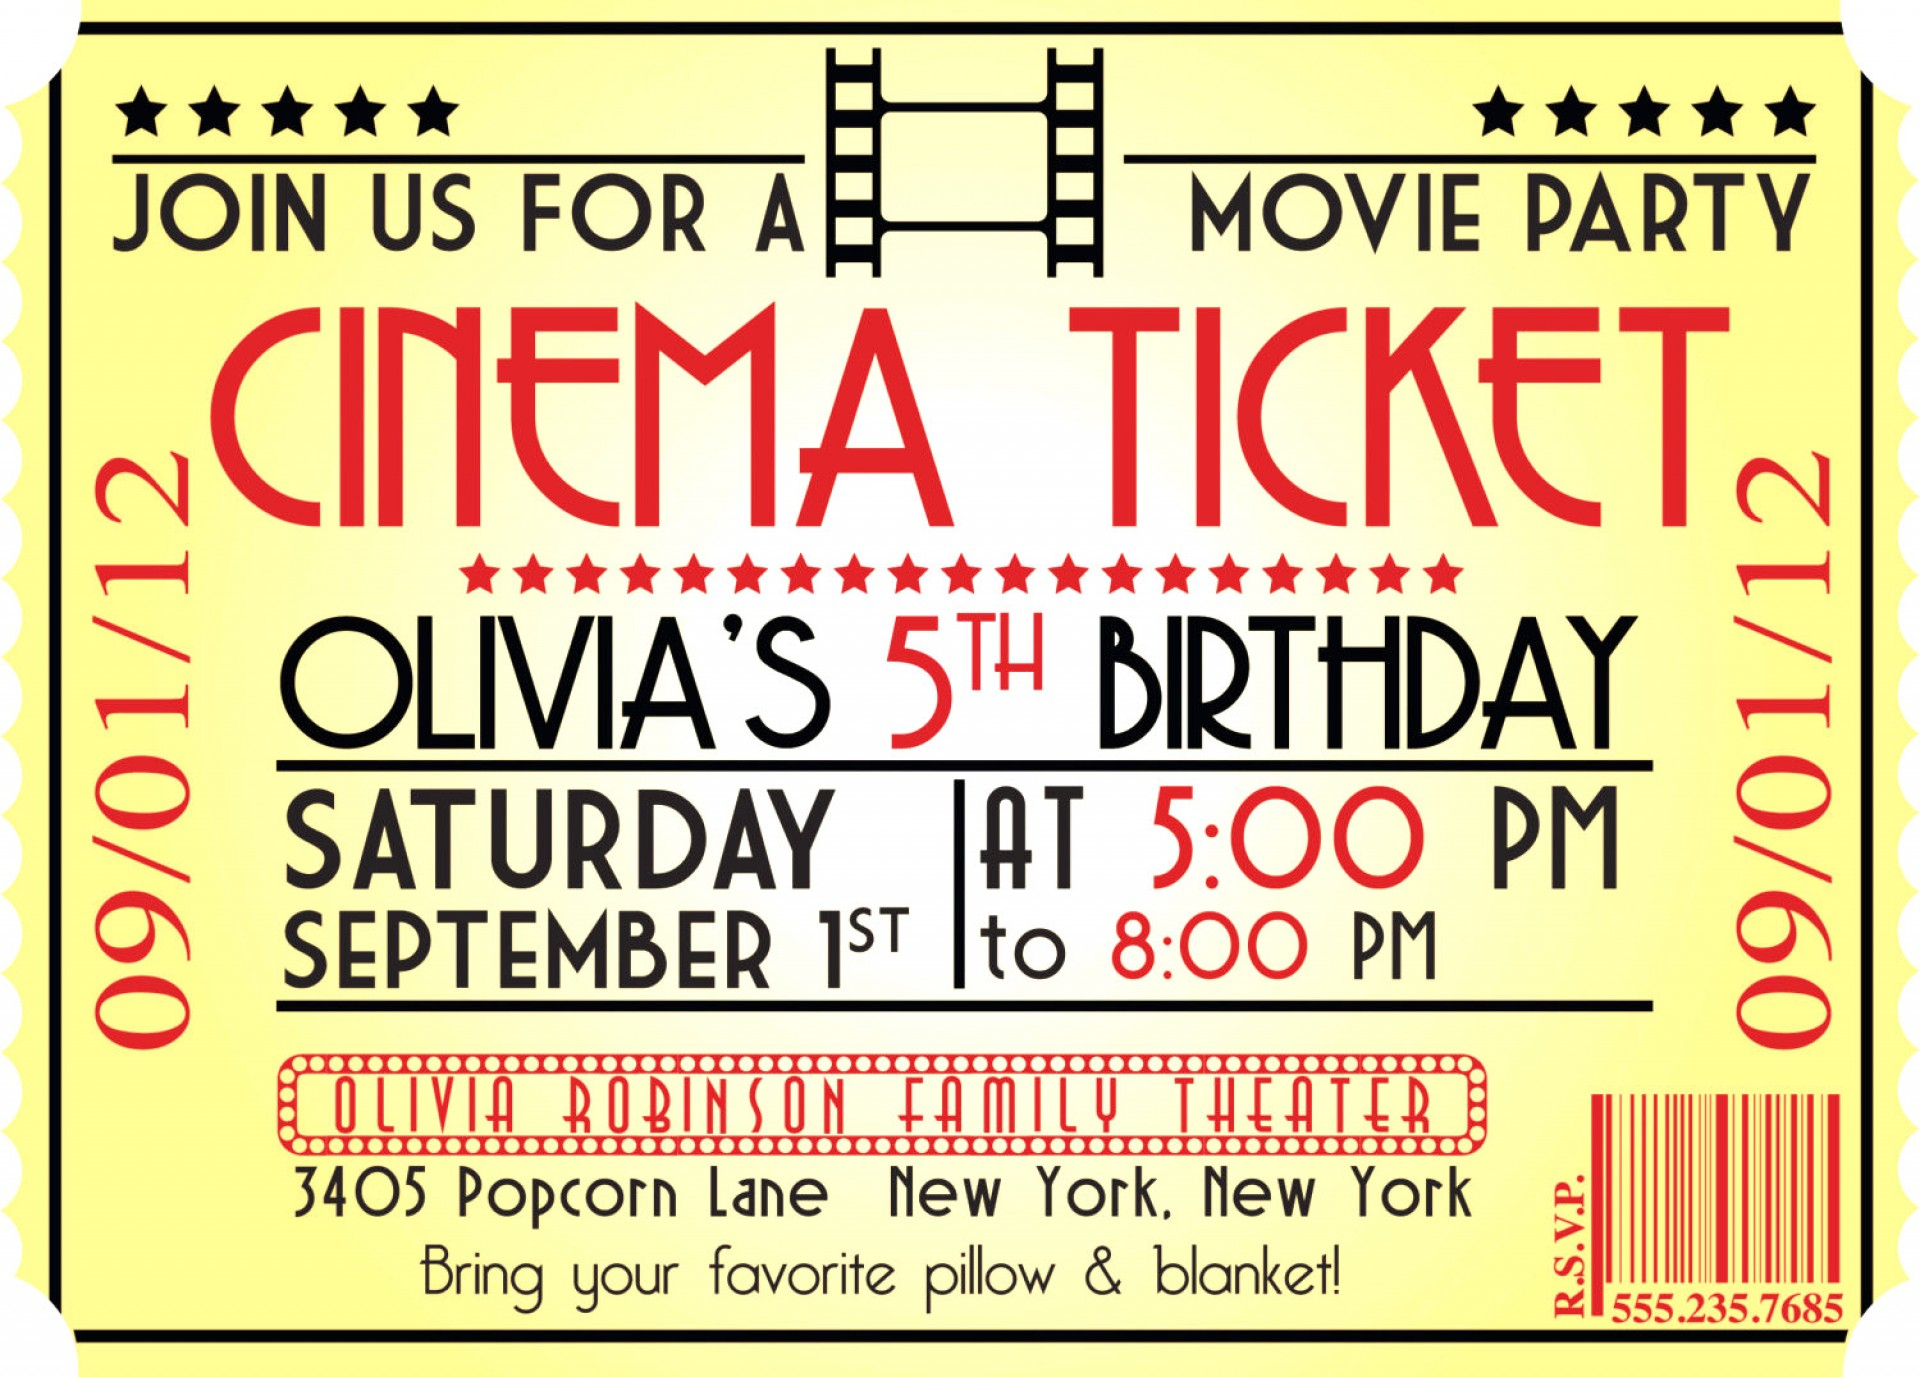 Impressive Movie Ticket Invitation Template ~ Ulyssesroom - Free Printable Movie Ticket Birthday Party Invitations